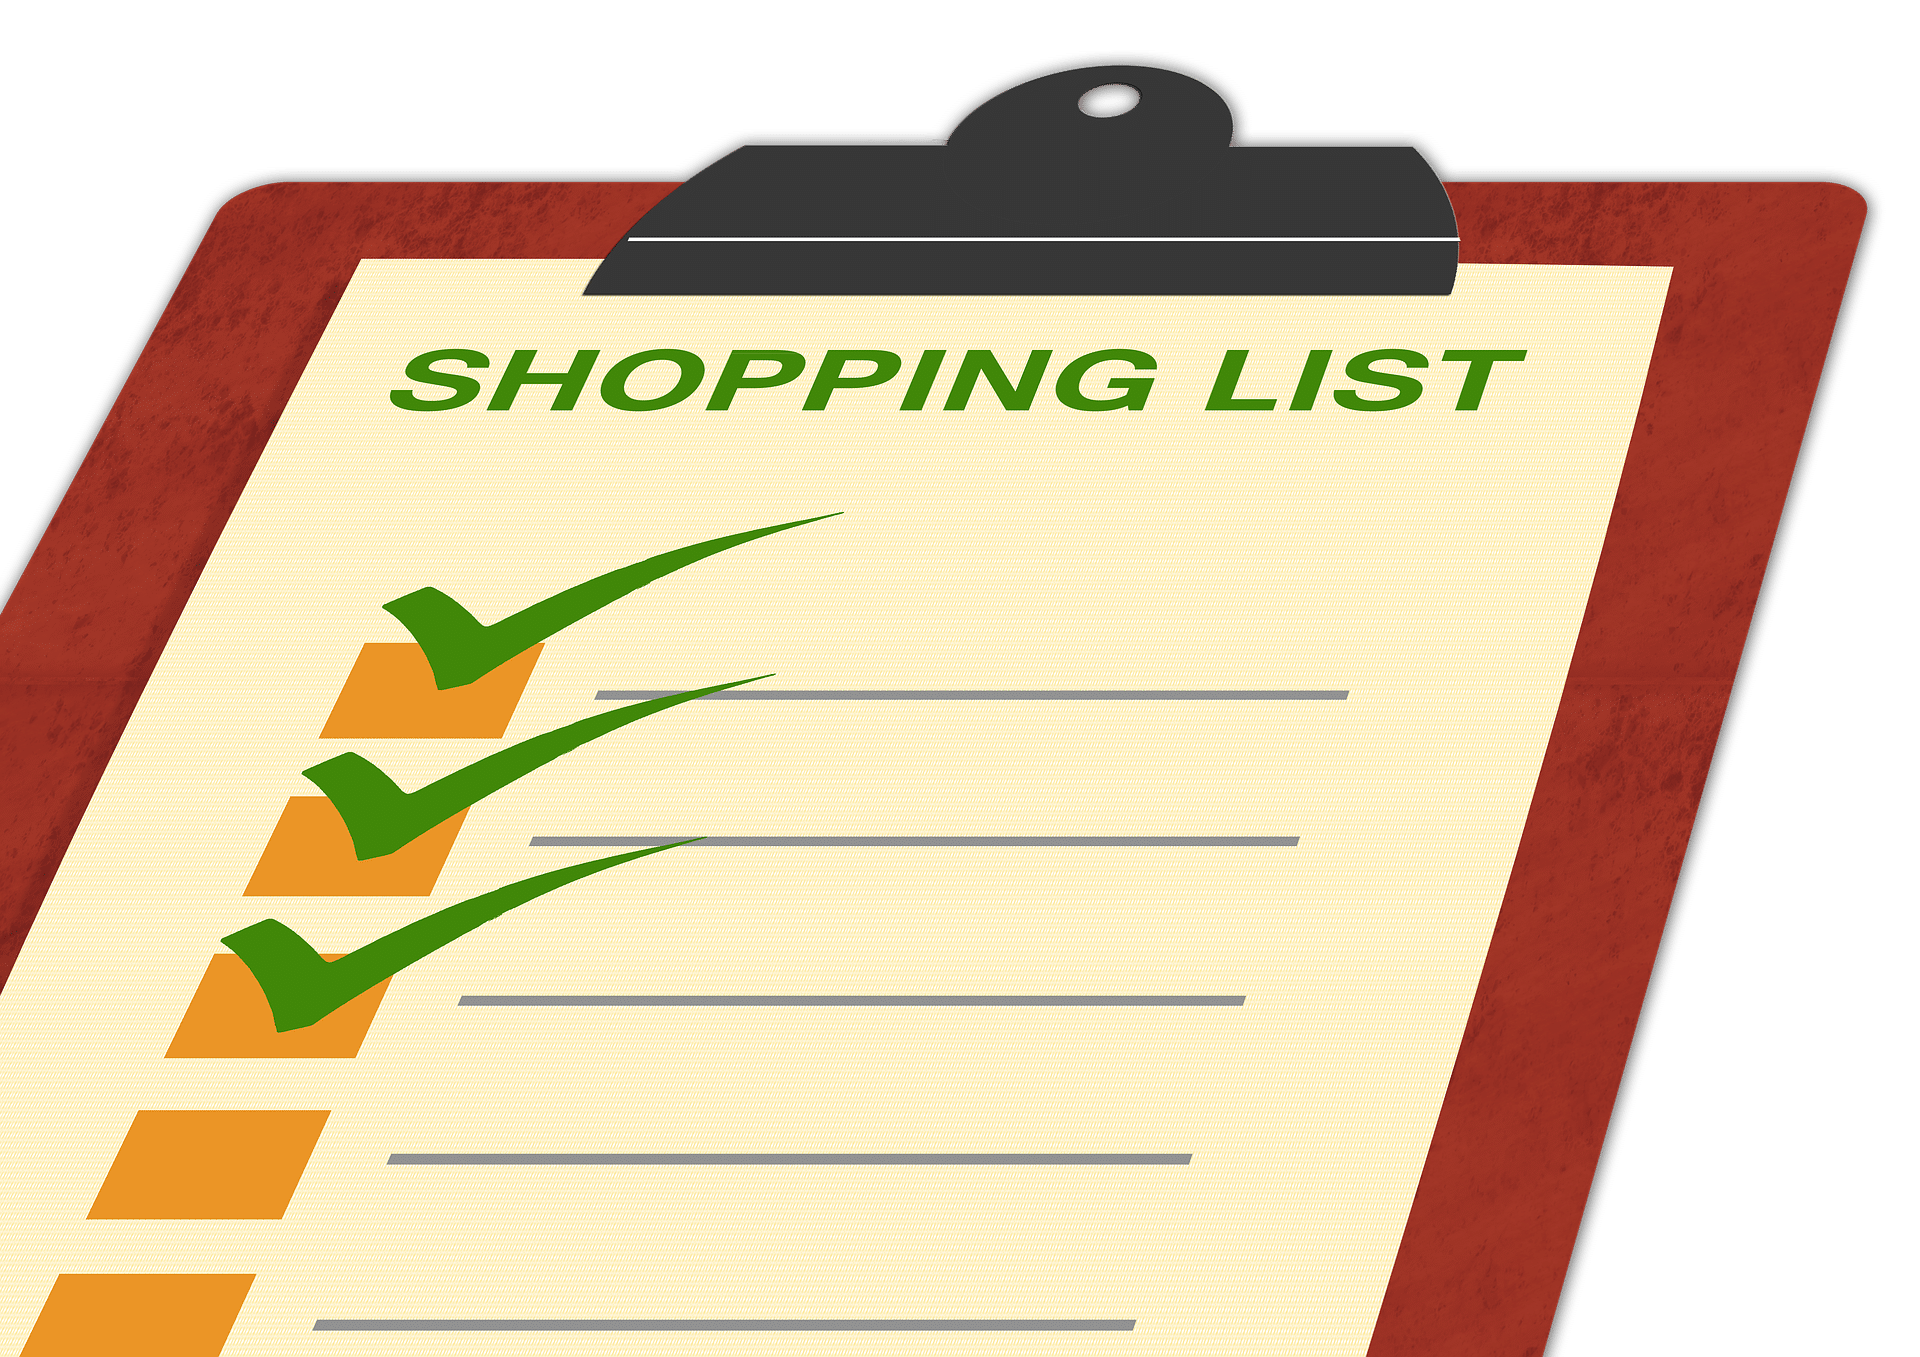 FODMAP Everyday's Low FODMAP Shopping List Series- Find low FODMAP foods at your favorite supermarkets. Download your FREE PDF here!